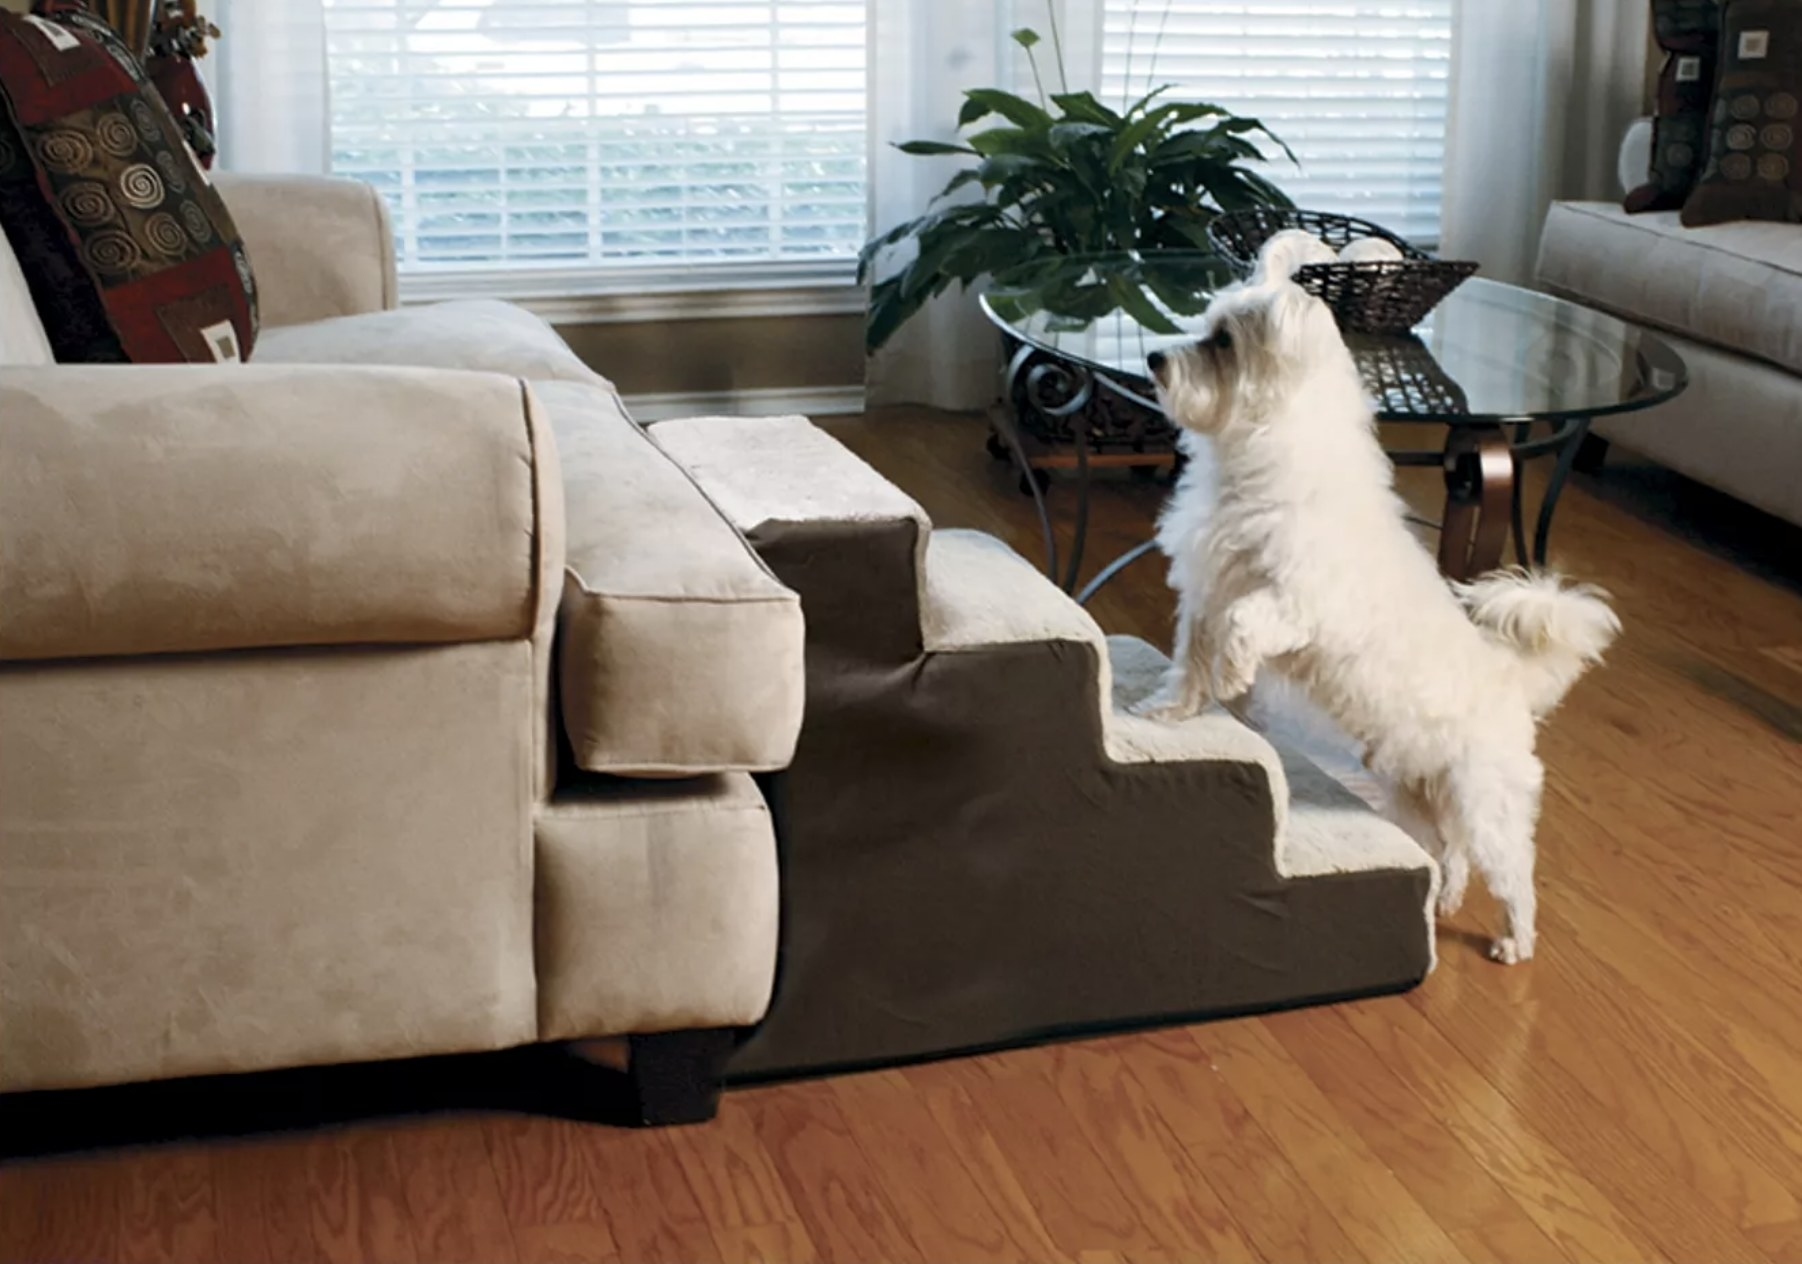 A dog using the soft cream-colored stairs to get up on a couch